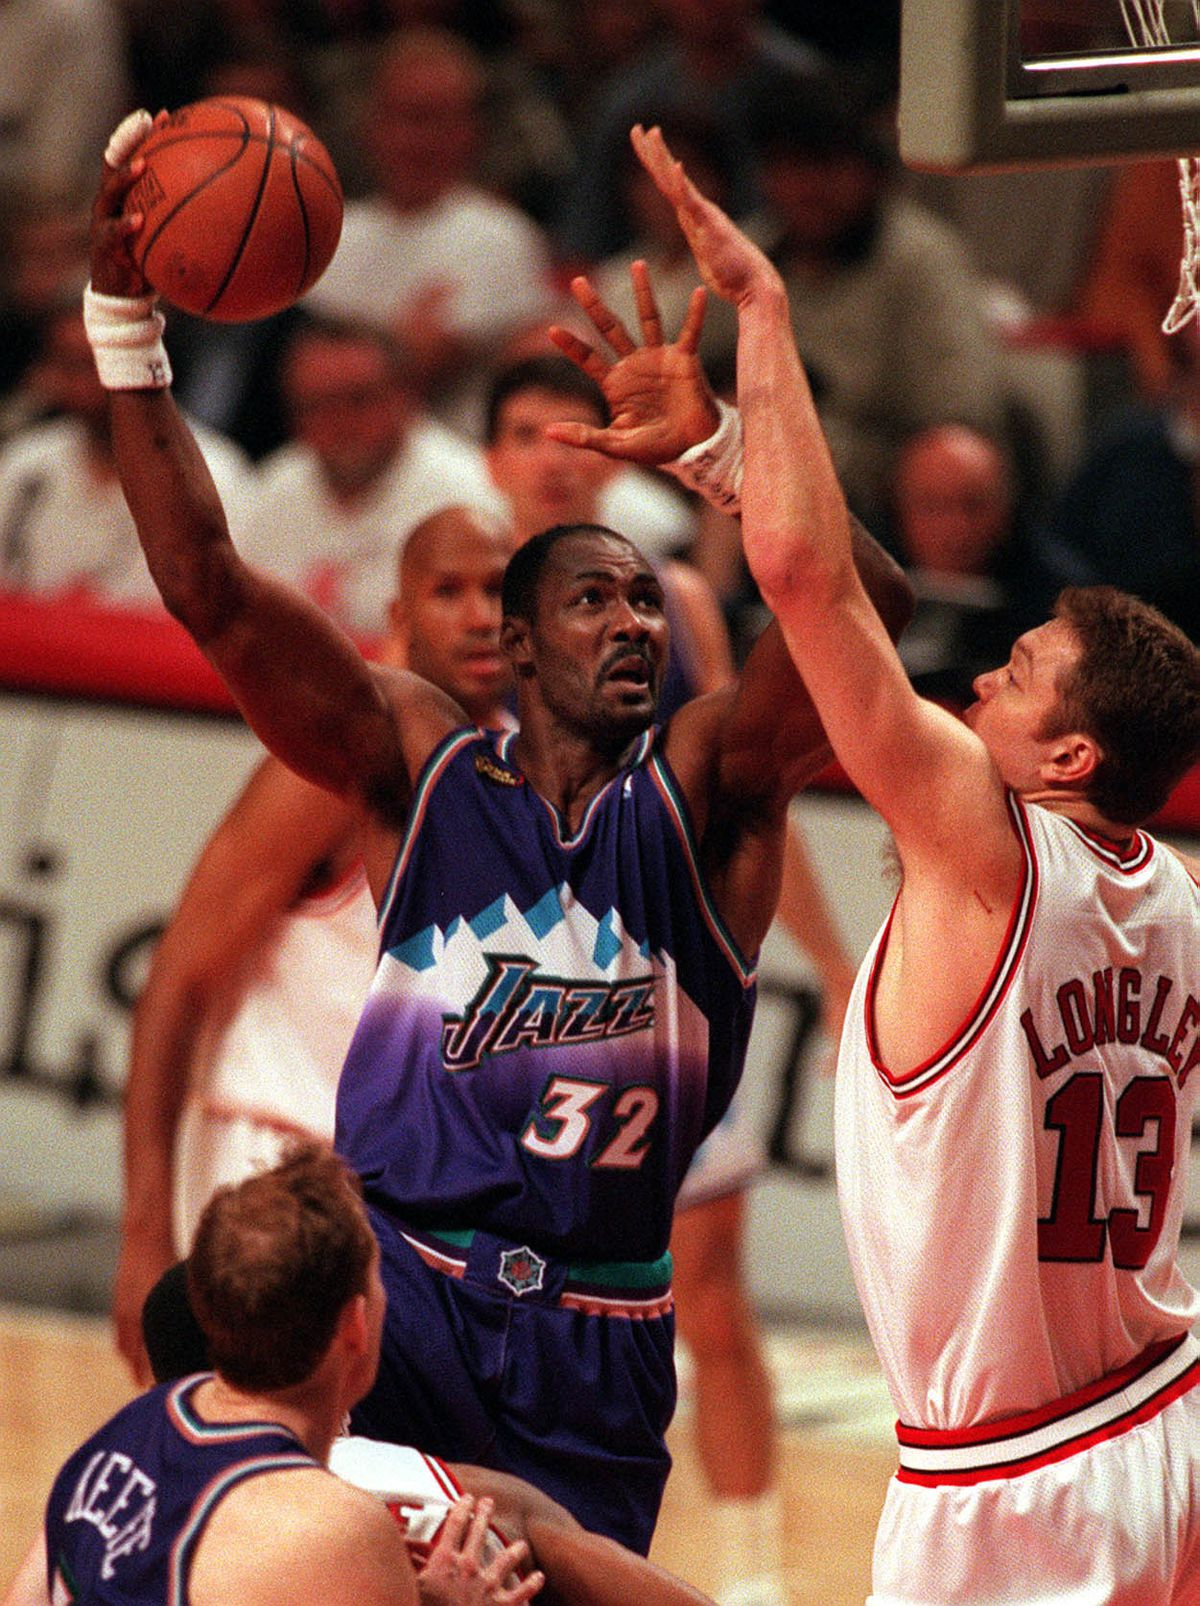 Karl Malone shoots over Luc Longley during the NBA Finals in Chicago.